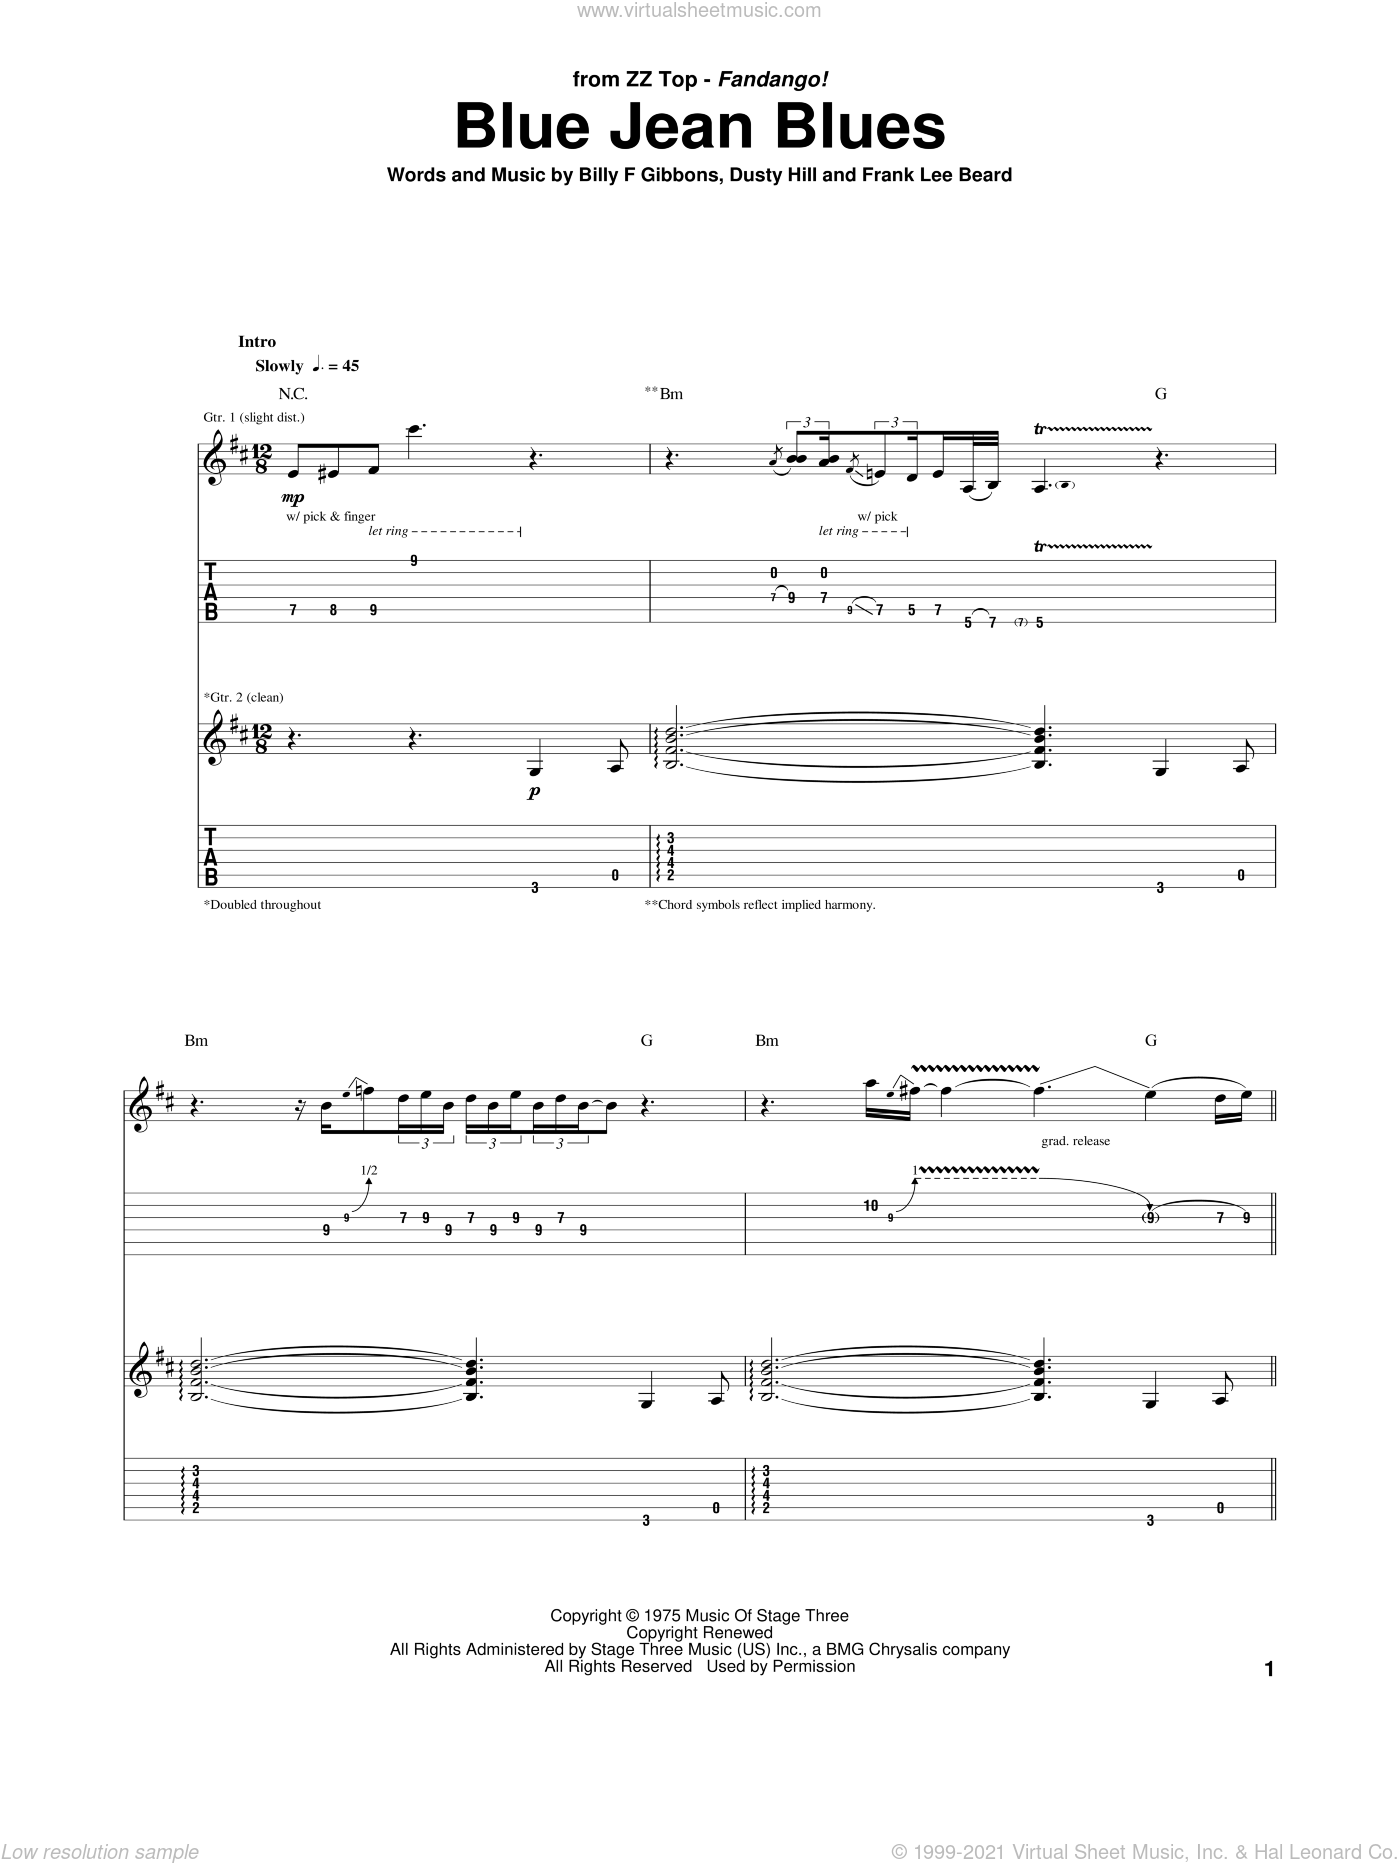 Blue Jean Blues sheet music for guitar (tablature) by Frank Beard, ZZ Top, Billy Gibbons and Dusty Hill. Score Image Preview.